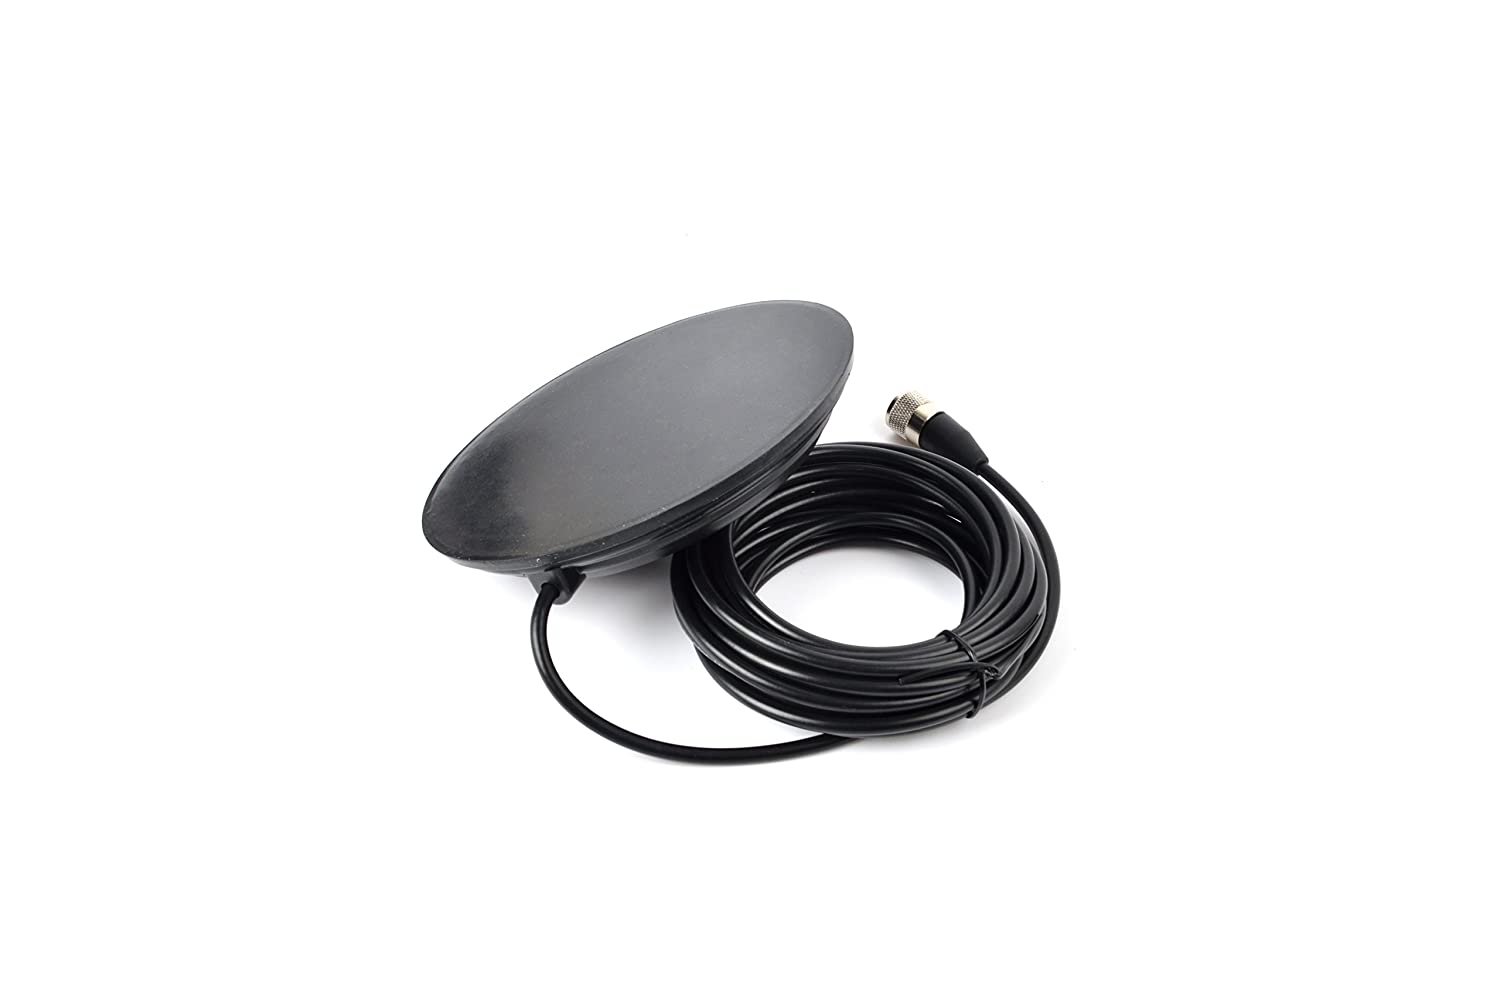 Hys Tc 155 61 Nmo Magnet Antenna Mount For Cb Radio W K40 Mic Wiring Diagram 5m164ft Rg58 Coaxial Cable Pl 259 Plug Gps Navigation